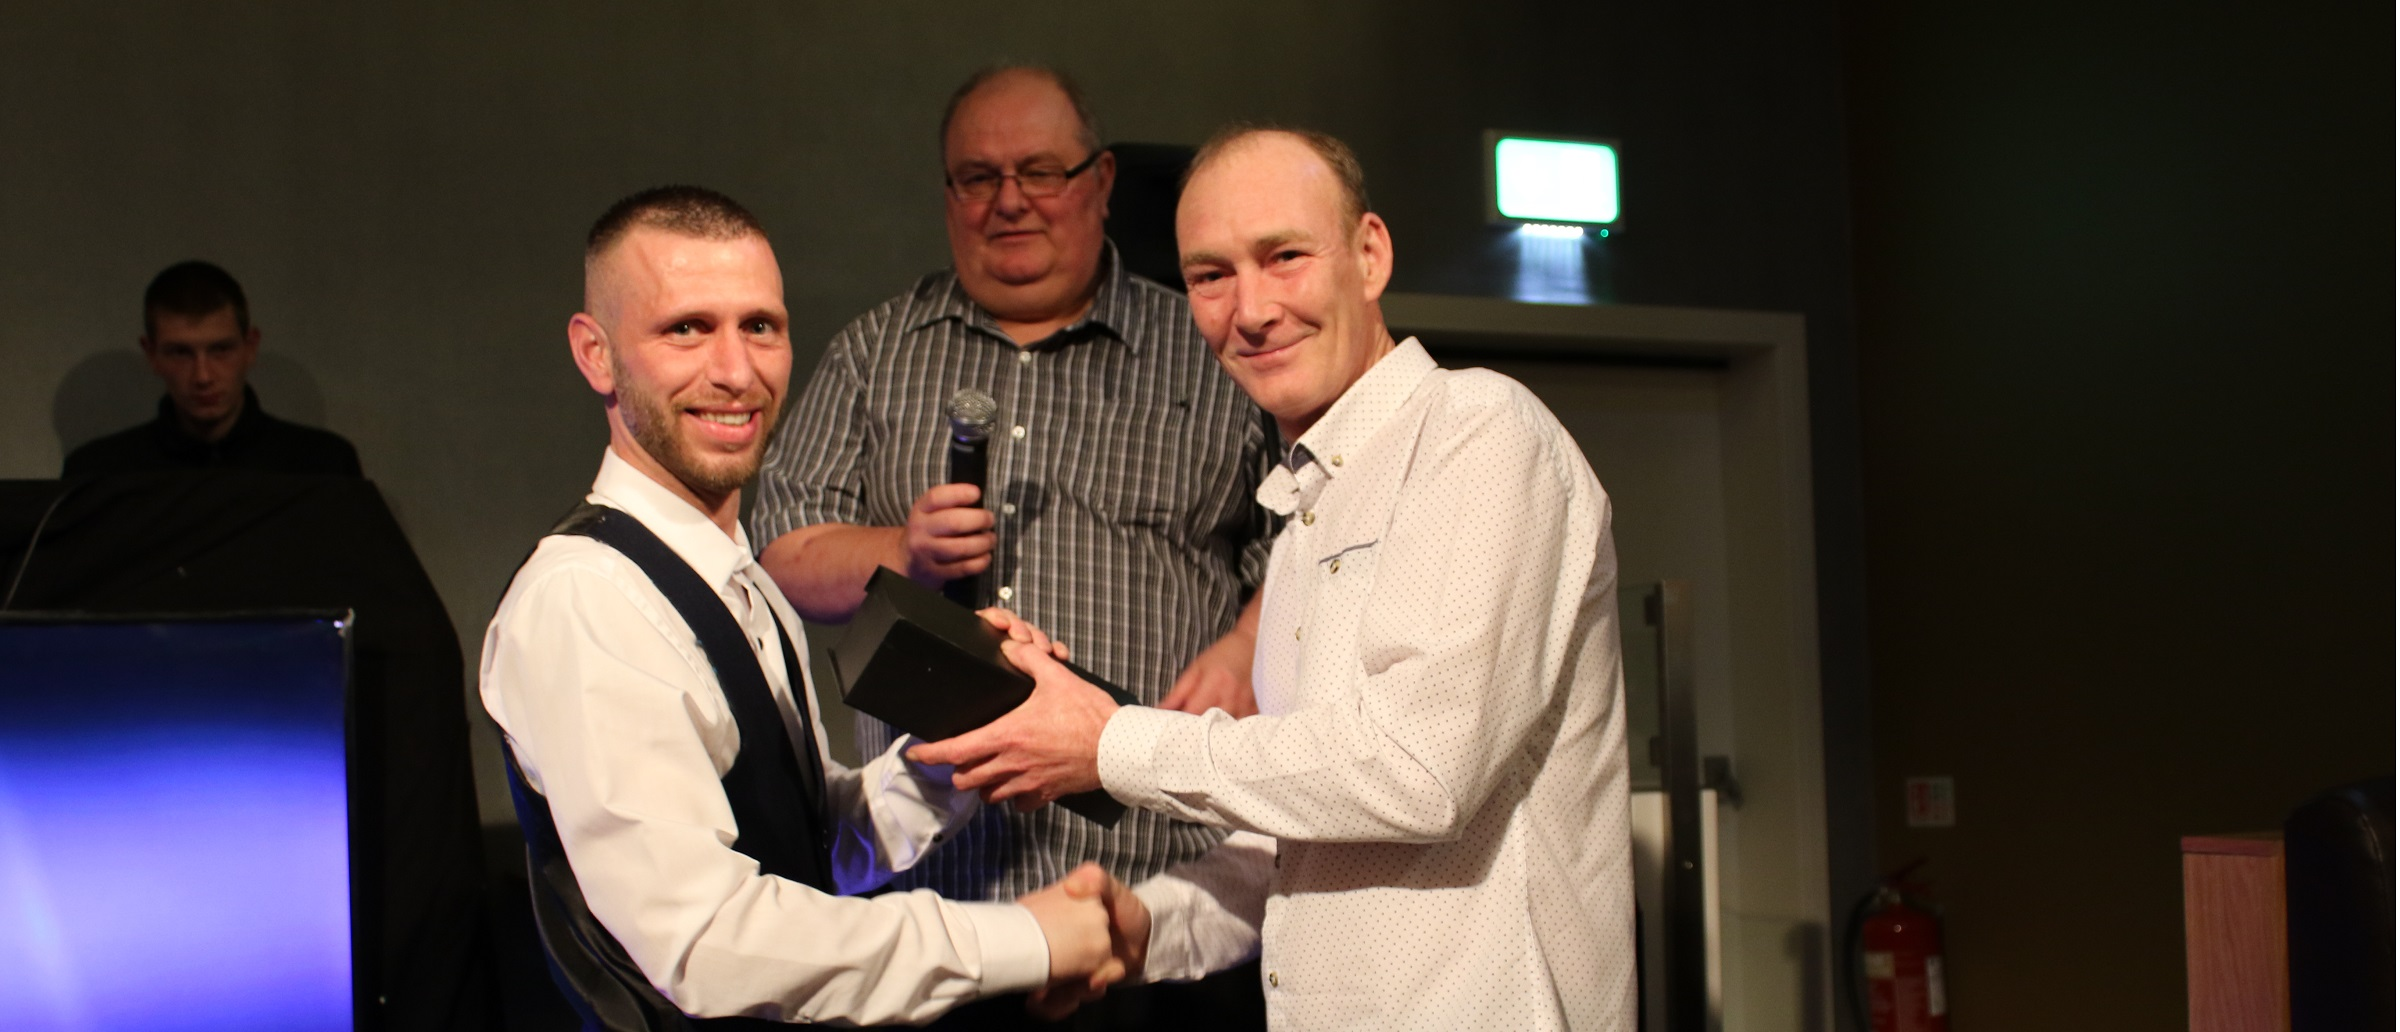 VIDEO: Awards for Smith, Byrne and Turner at presentation evening